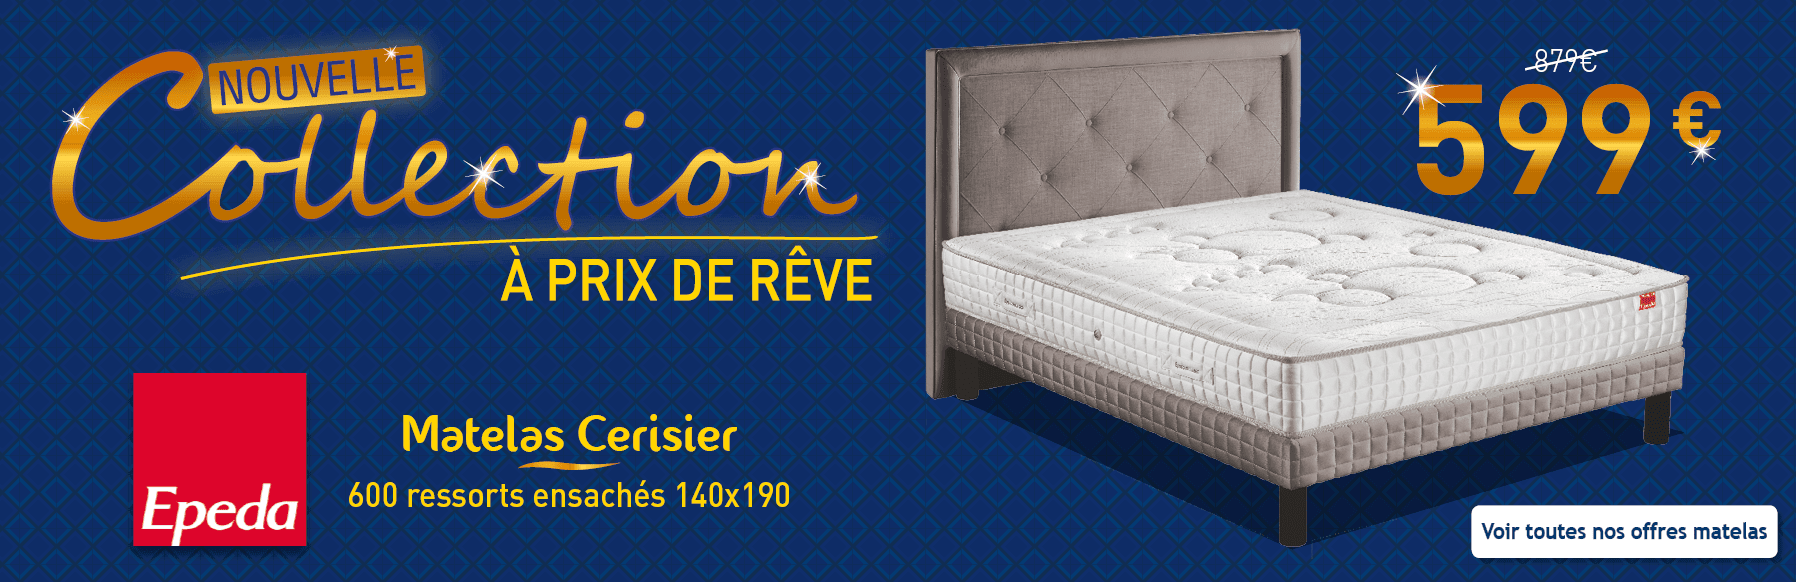 Olyreve Fr Literie Matelas Relaxation Amp Canap 233 S